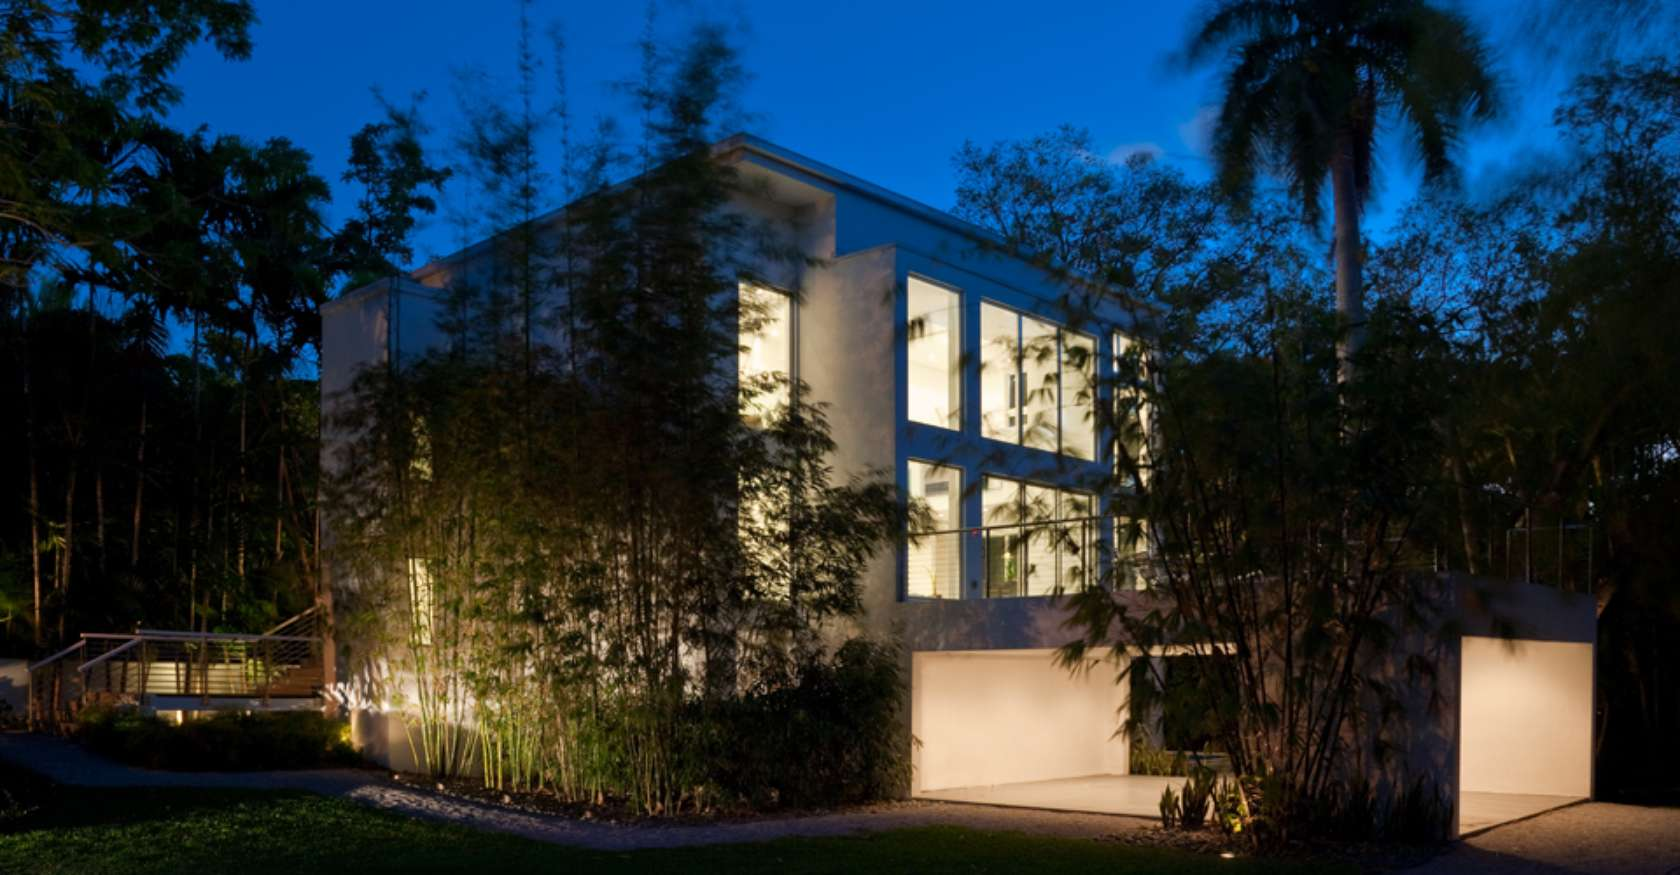 Calm and Minimalistic Spaces of Utopia Residence Coconut Grove by [STRANG] Architecture-02